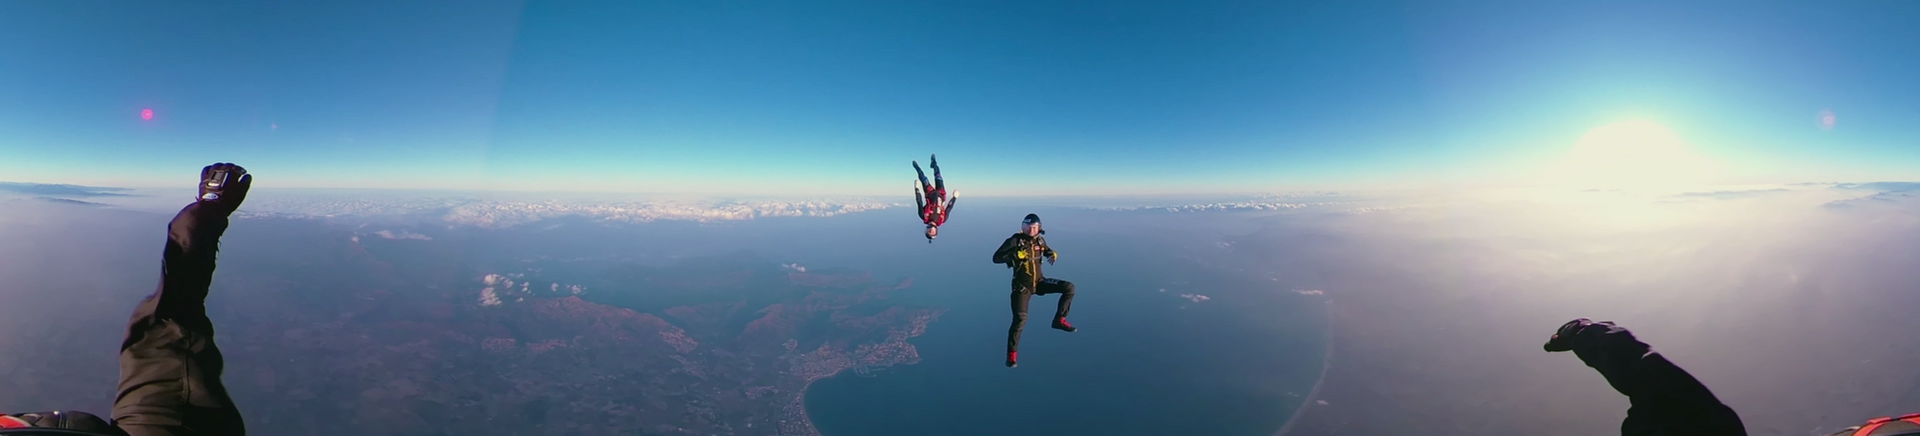 Tele2 Skydiving 360 VR & Web